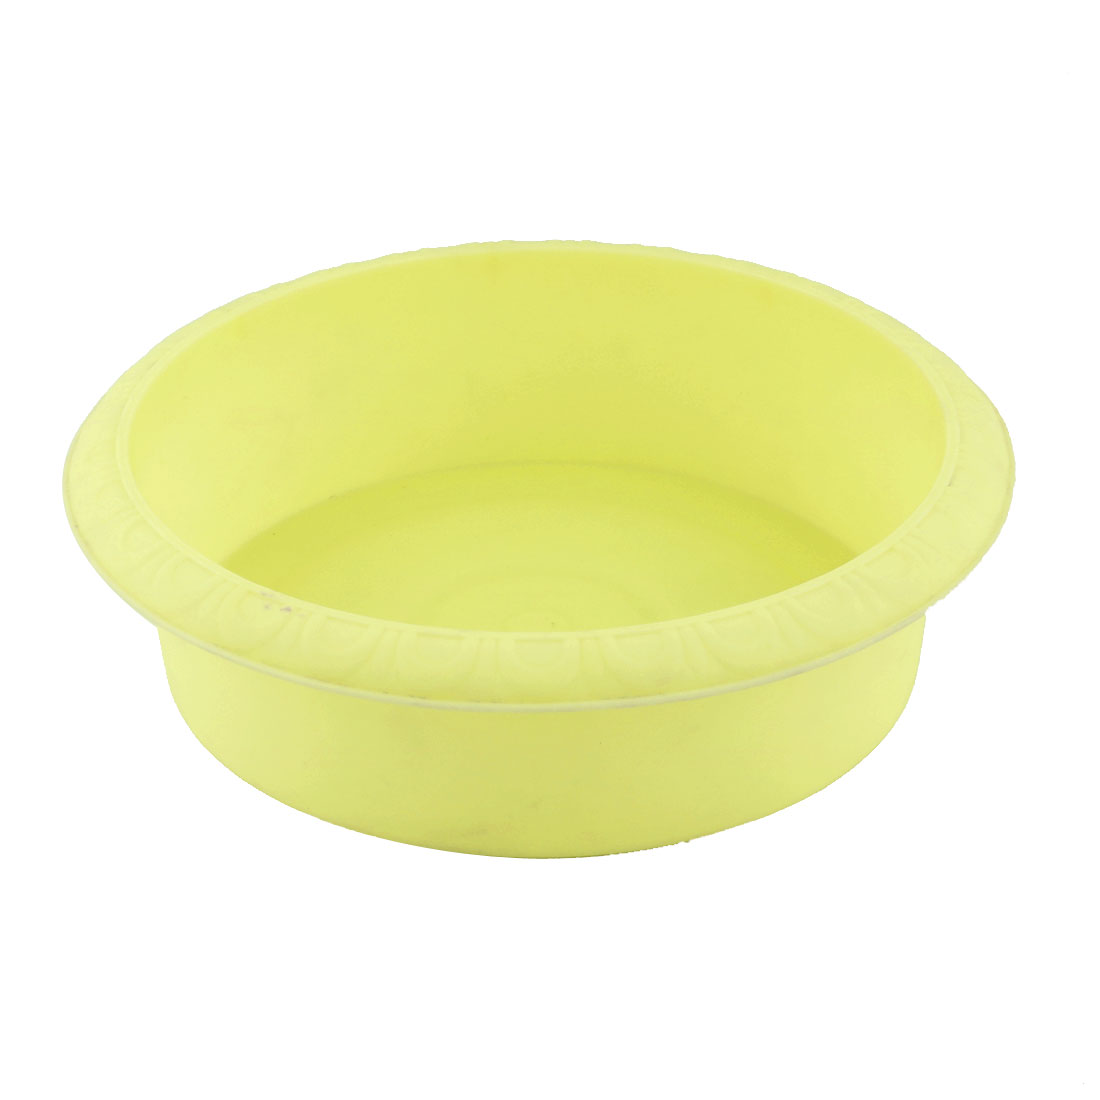 Dormitory Balcony Plastic Round Cactus Plant Flower Grass Pot Holder Container Yellow